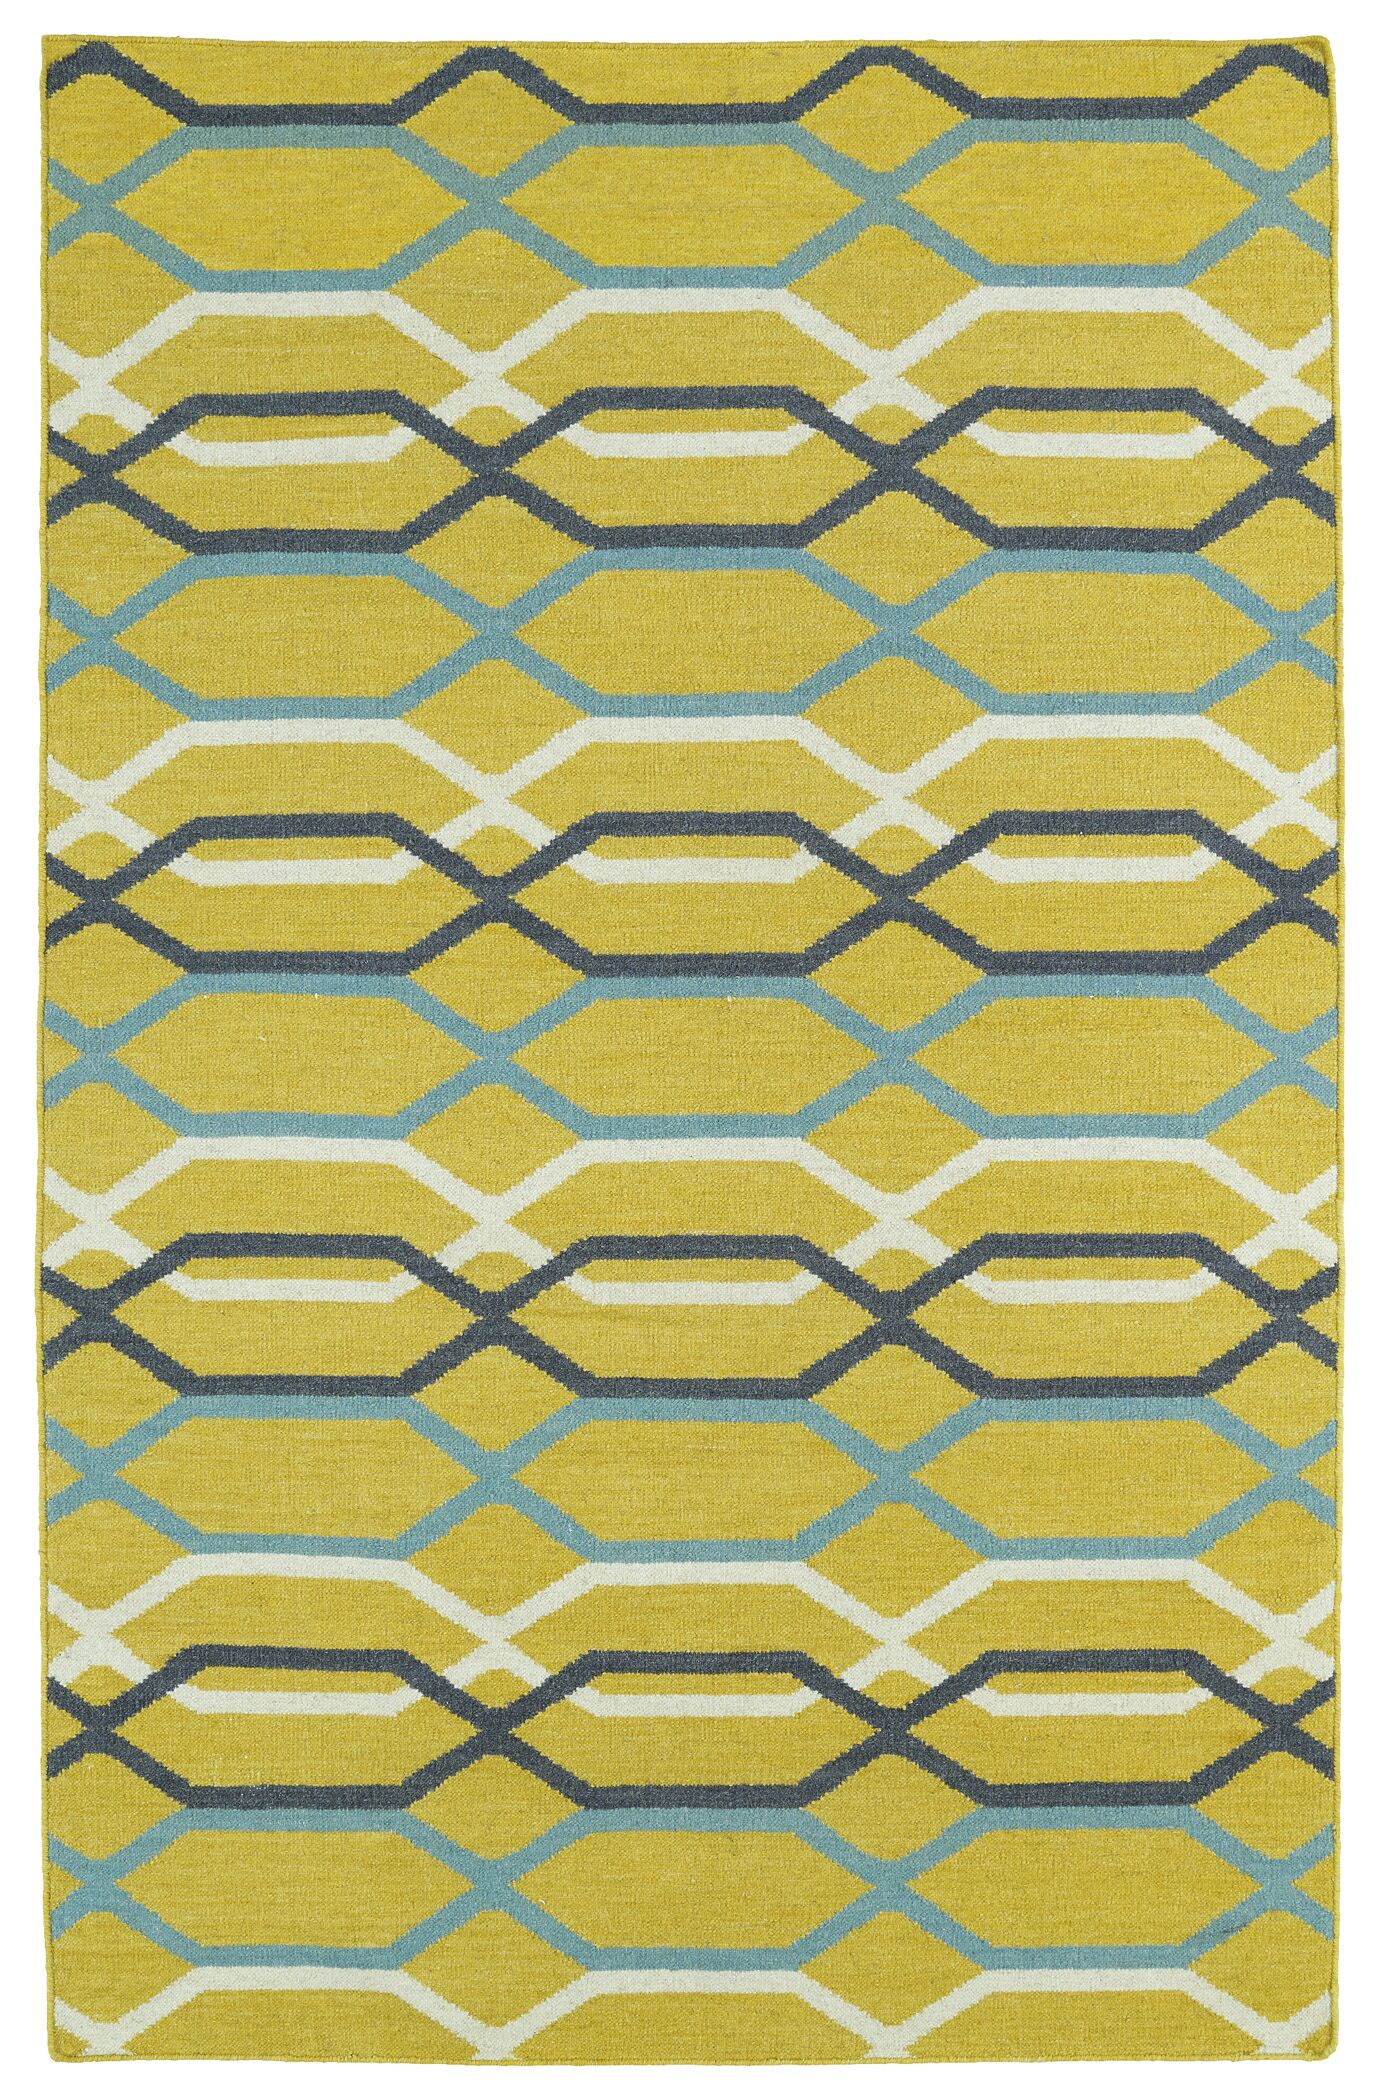 Dolton Yellow Geometric Area Rug Rug Size: Rectangle 5' x 8'